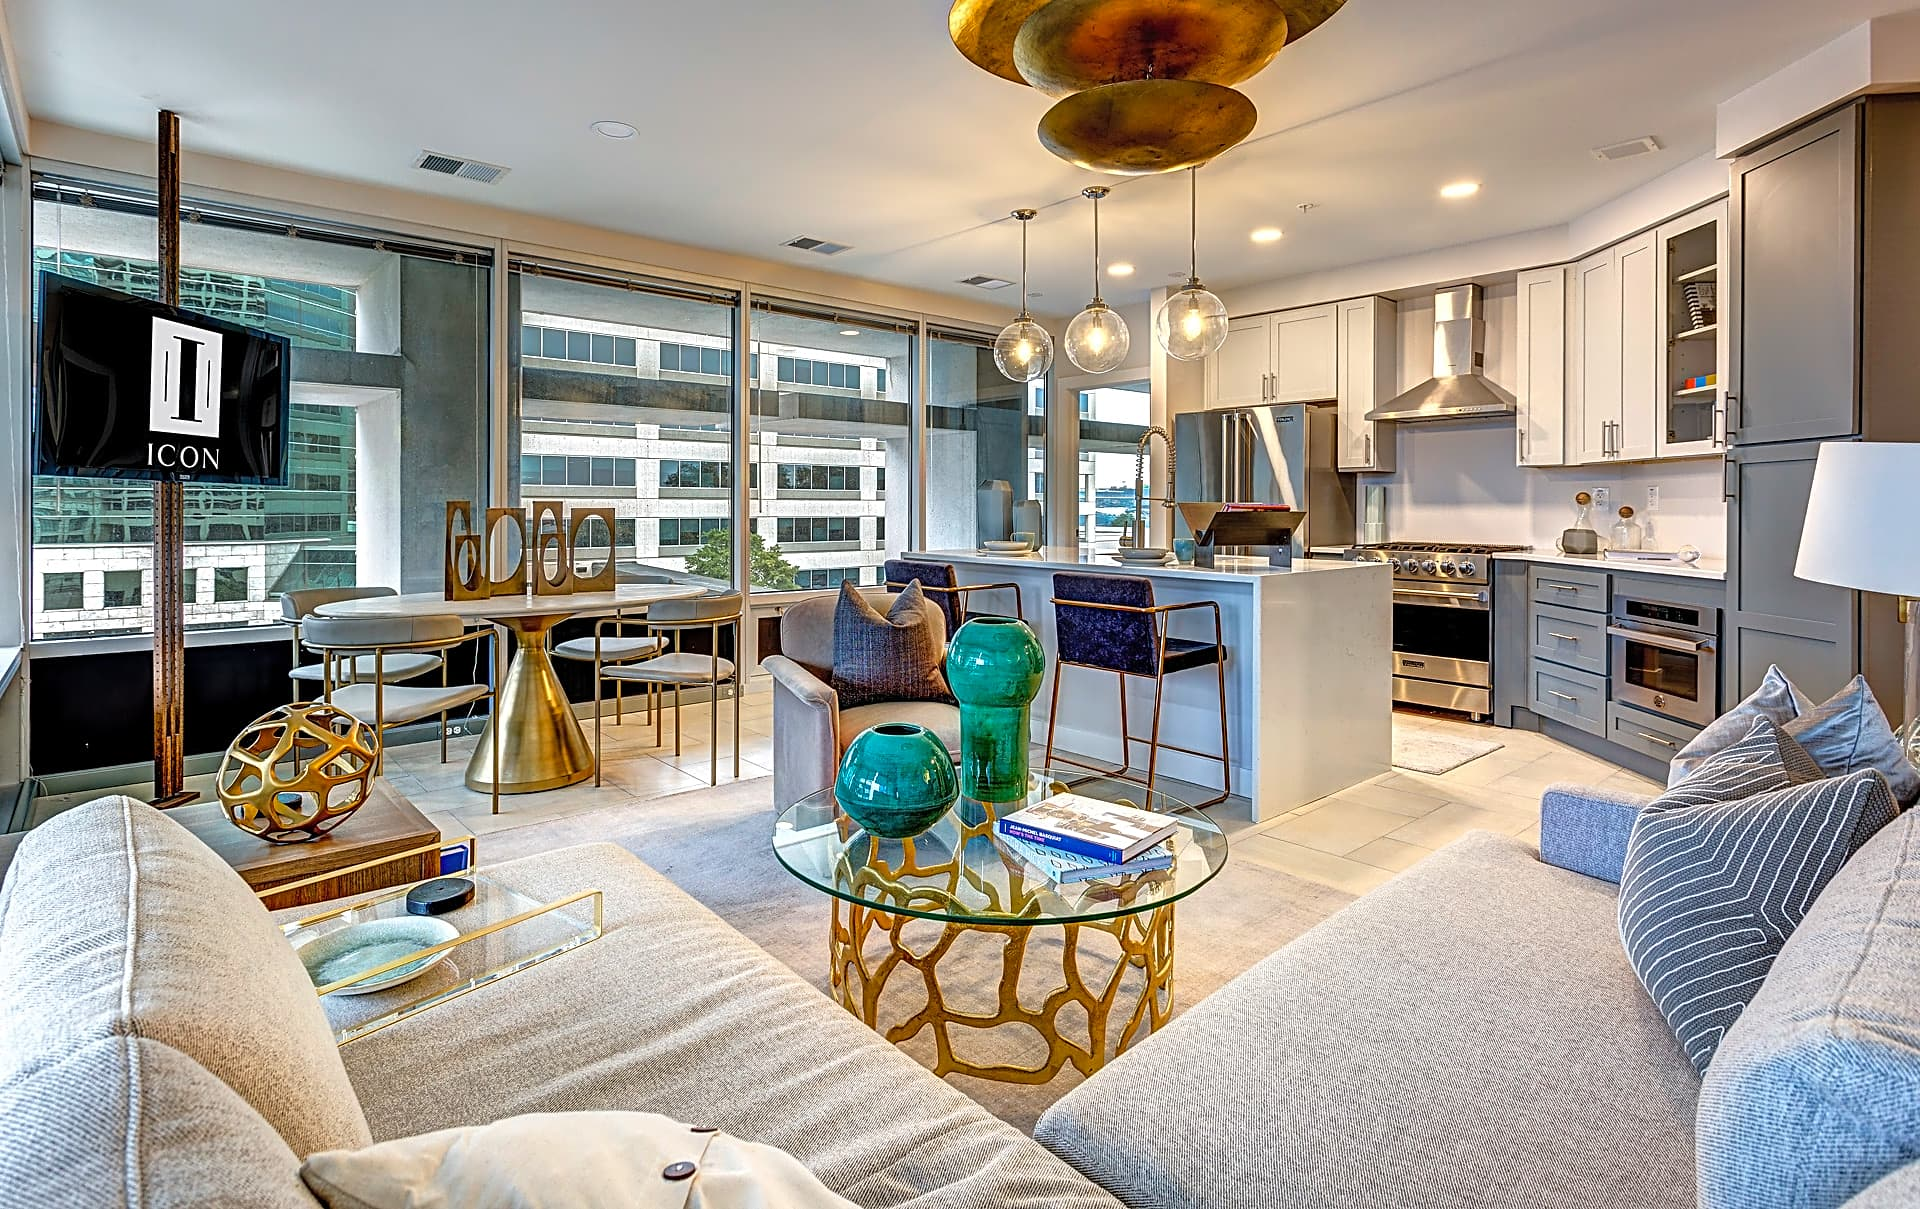 Spacious living areas with a grand view of the city:  welcome to Icon Norfolk Apartments!